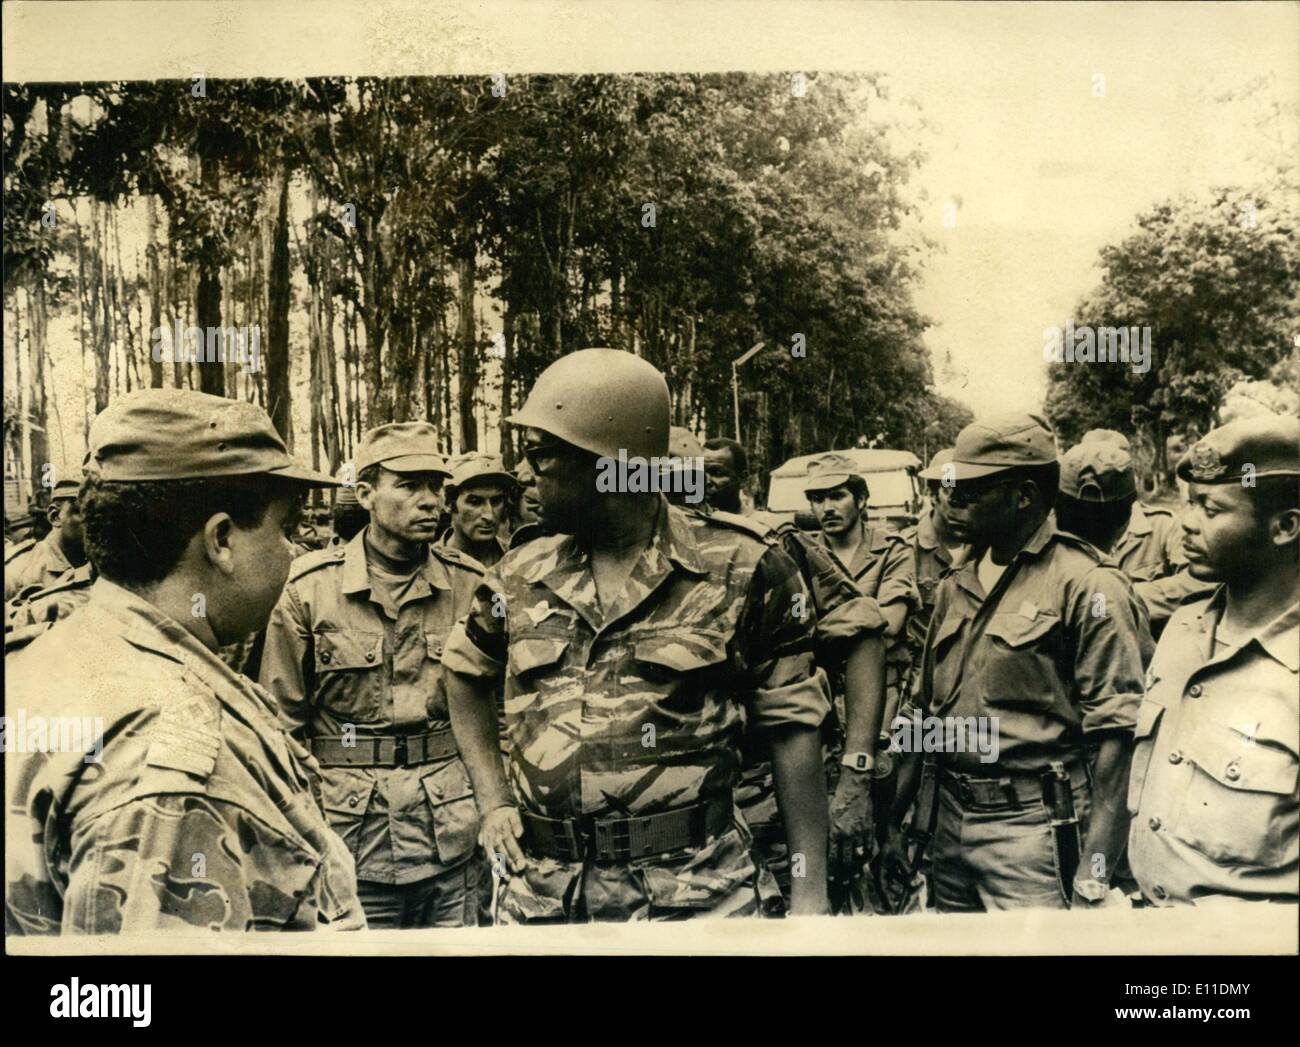 May 05, 1977 - President Mobutu Meets His Allies. President Mobutu of Zaire paid a visit to his mixed forces of Zairean and Moroccan troops on the outskirts of Mutshatsha, dressed in a Para-outfit - Stock Image